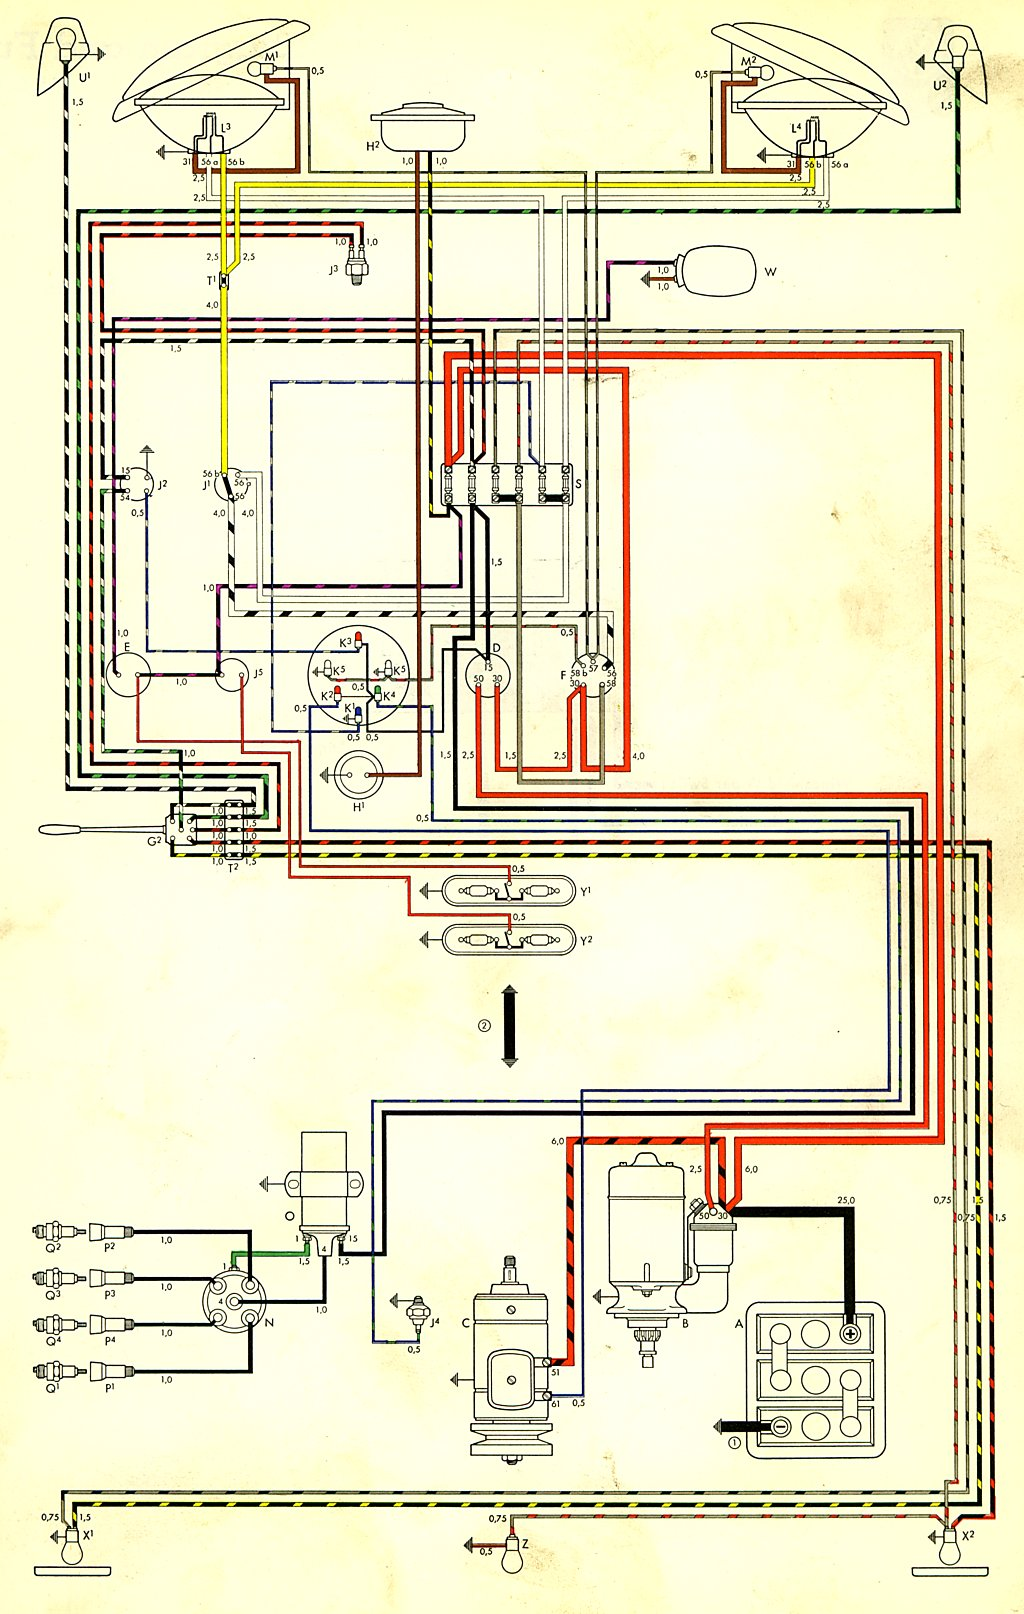 bus_59_USA 1959 bus wiring diagram (usa) thegoldenbug com 1968 vw bug headlight wiring diagram at soozxer.org